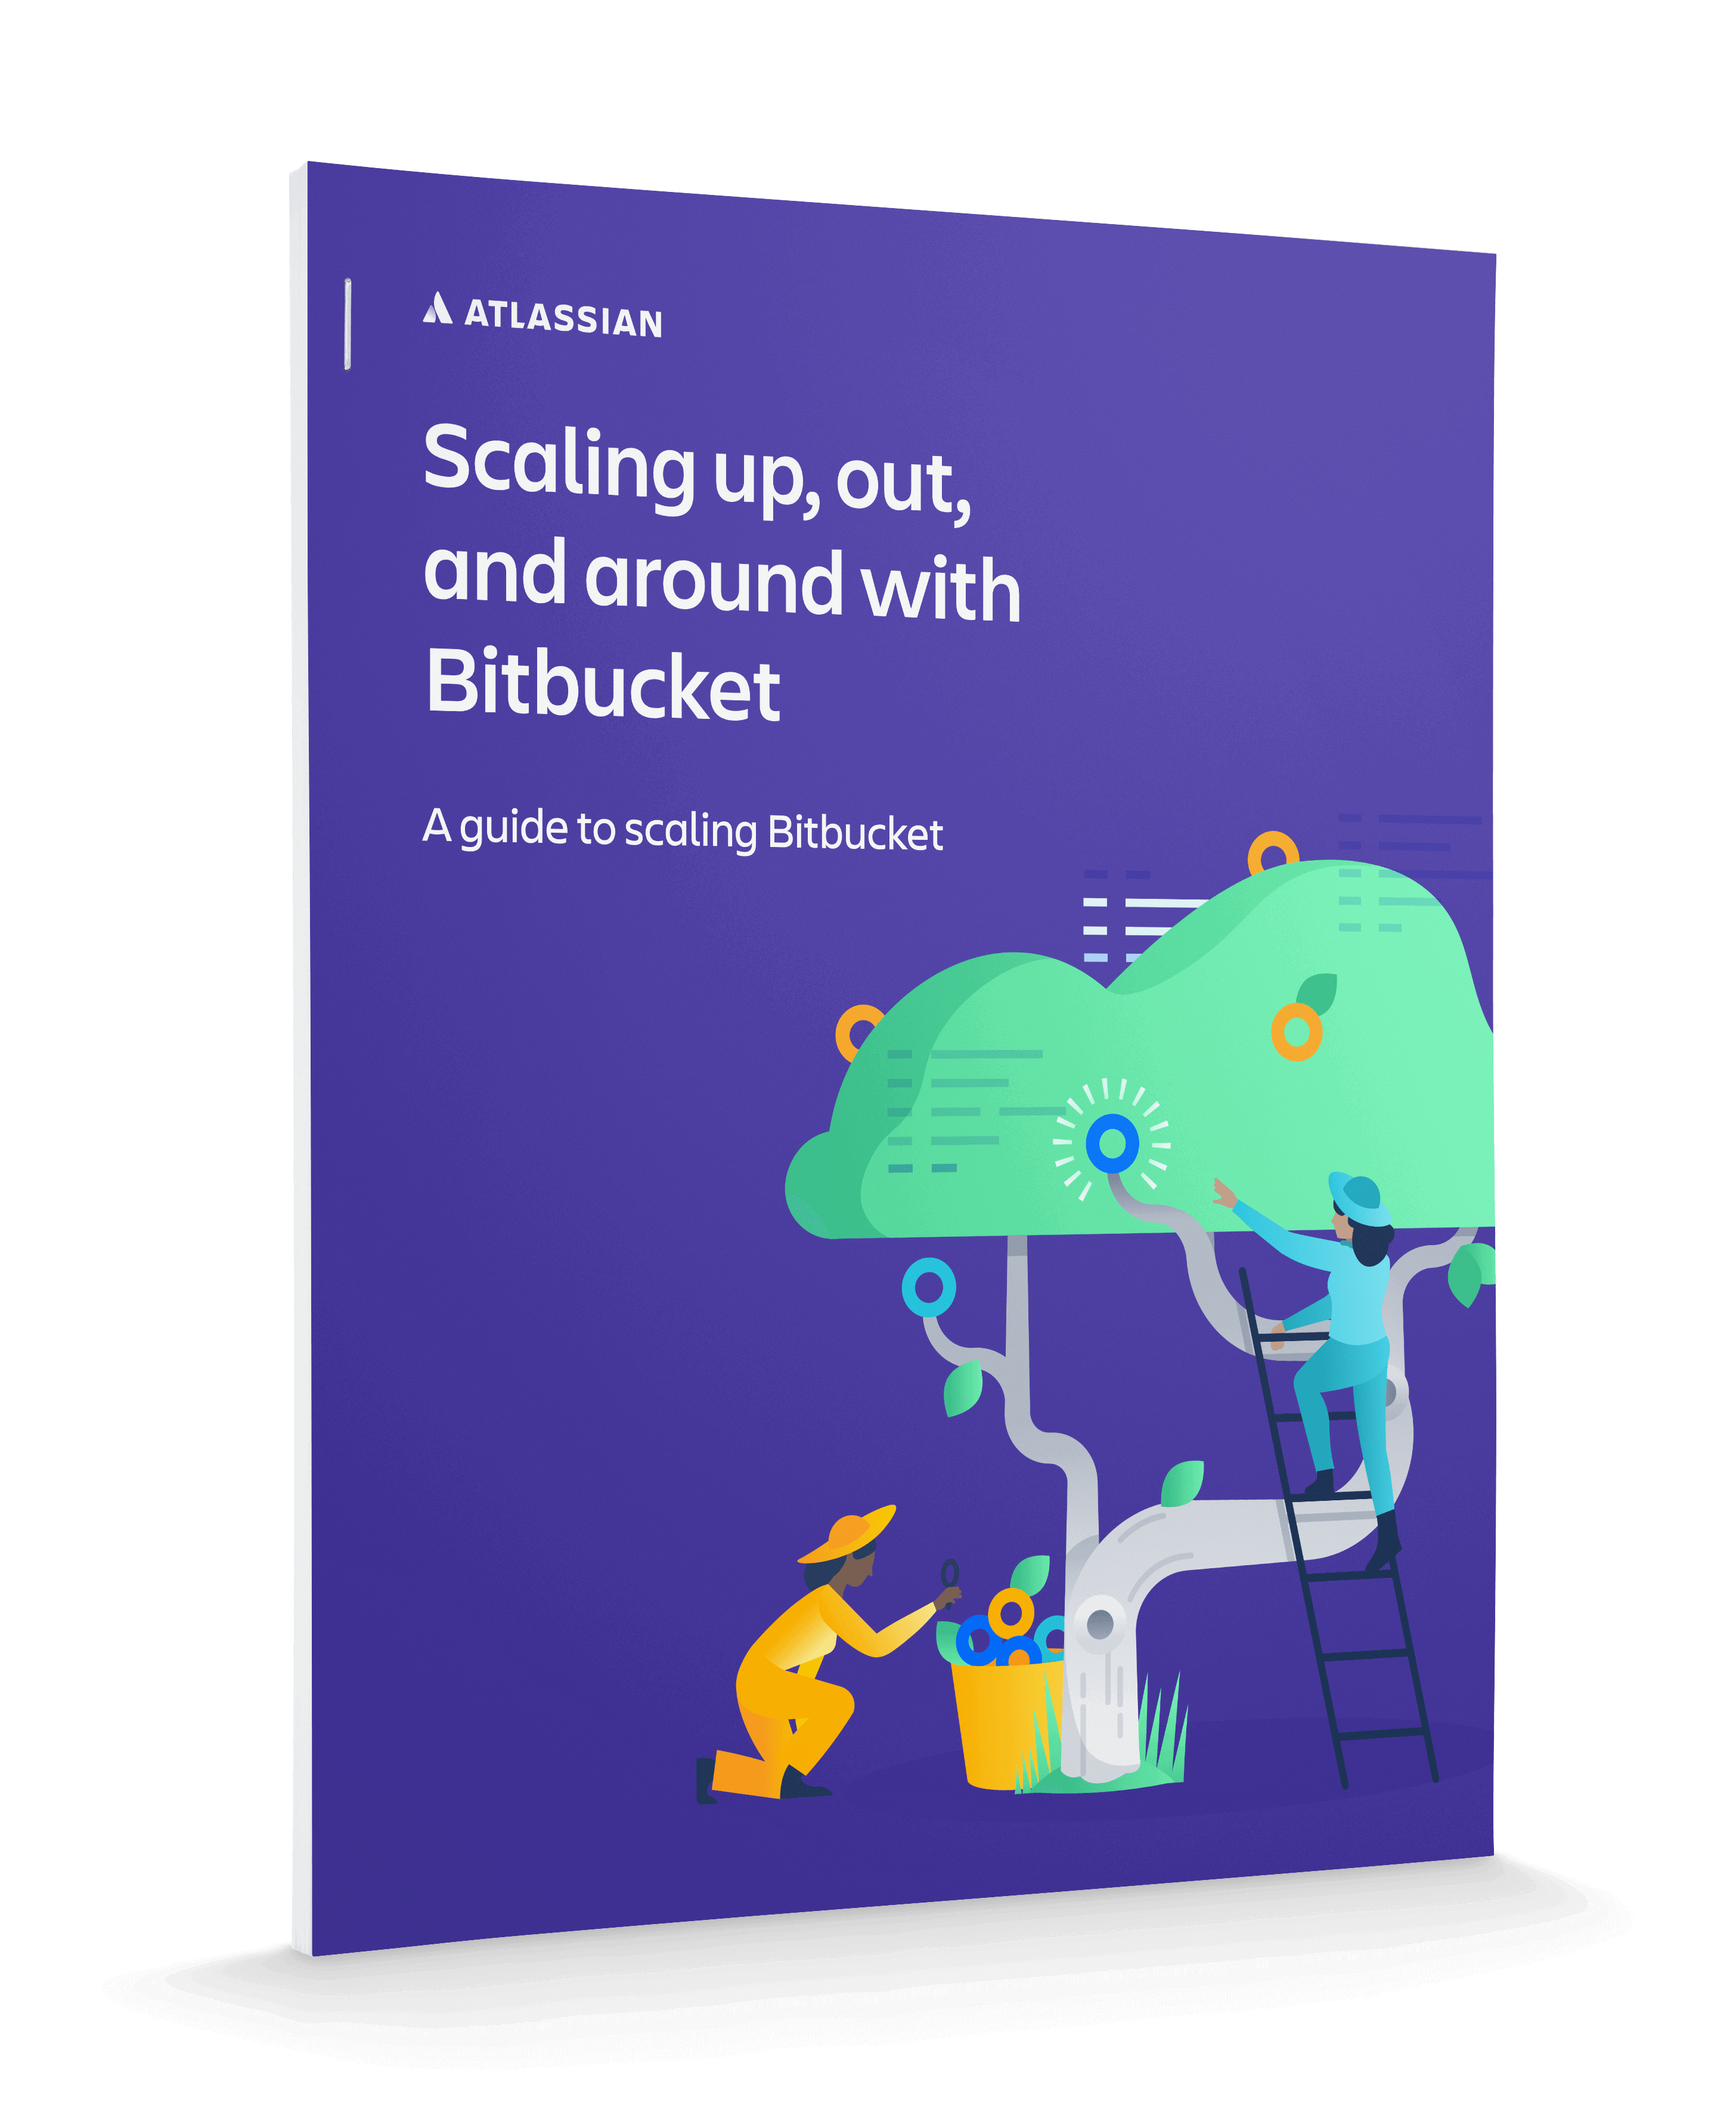 Scaling up, out and around with Bitbucket Data Center